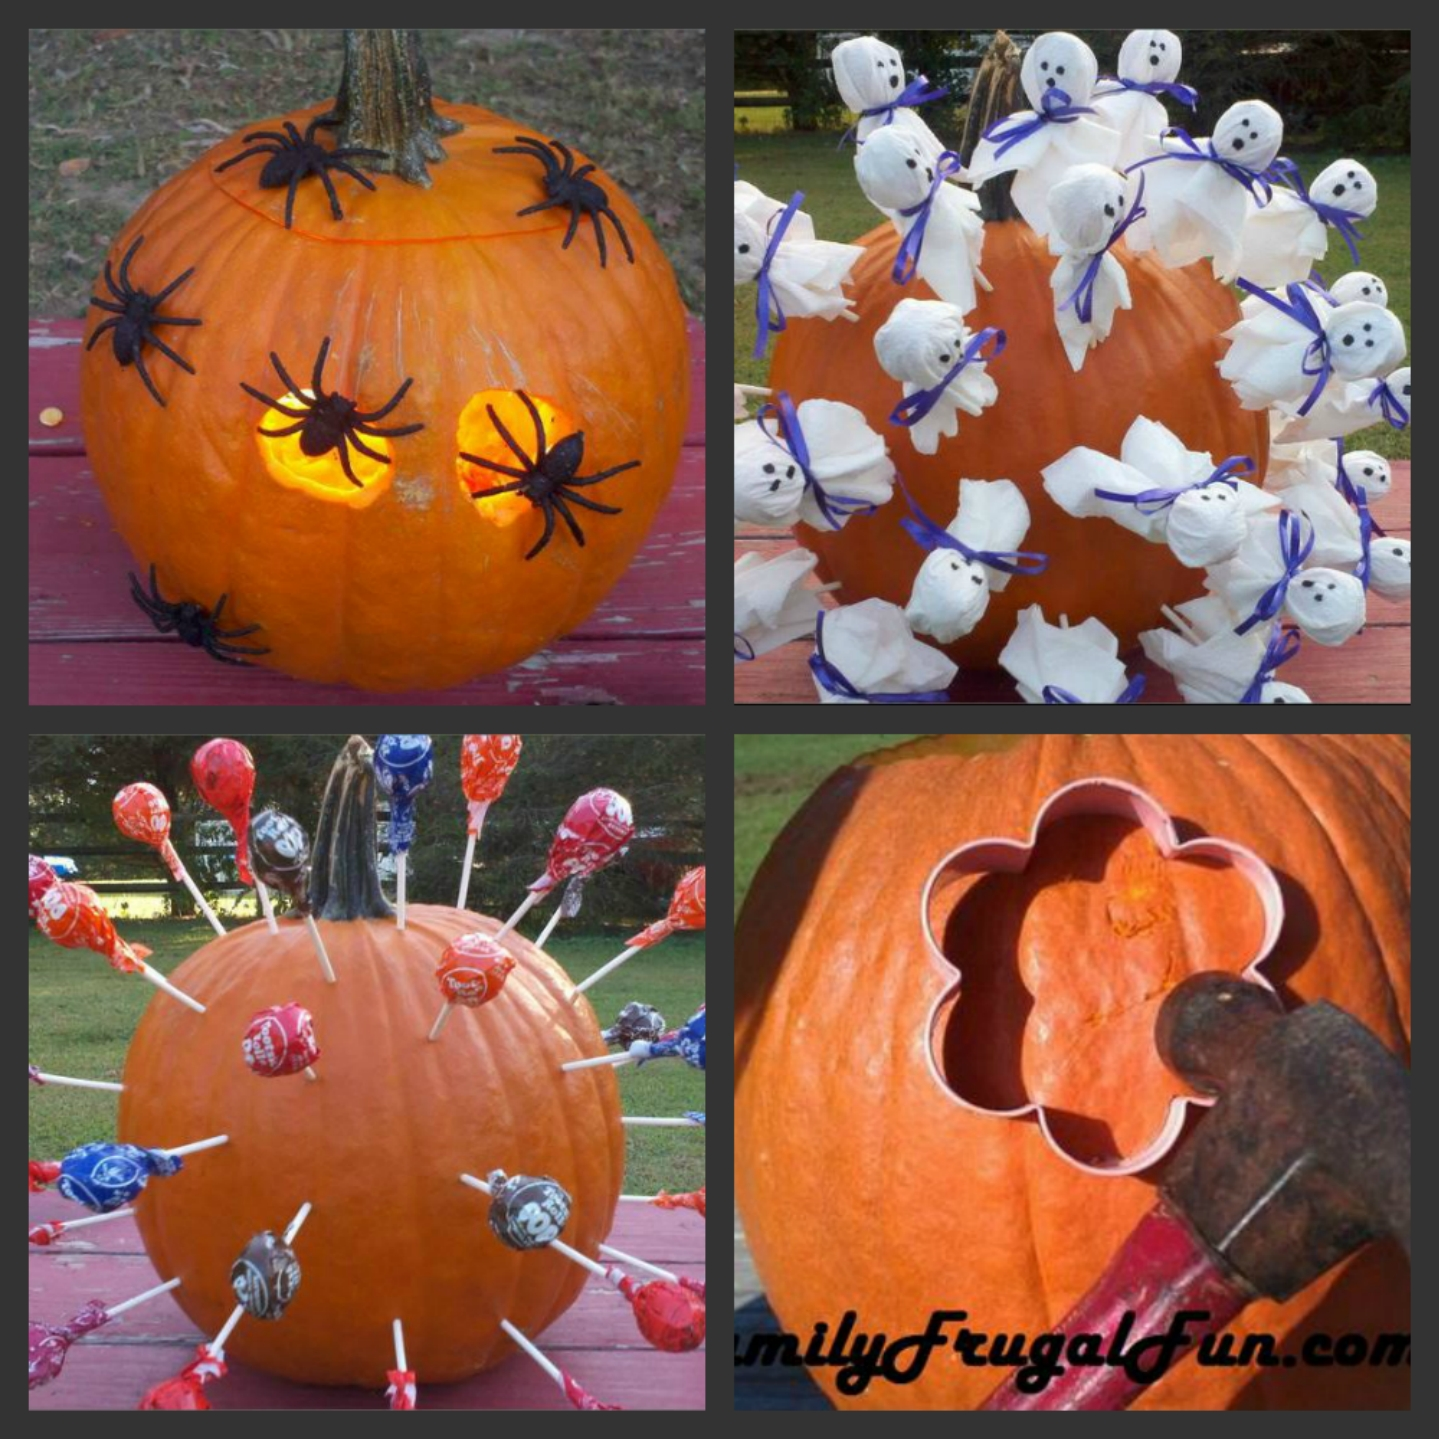 10 Most Recommended Non Carving Pumpkin Decorating Ideas jack o lantern ideas pumpkin decorating loversiq 2020